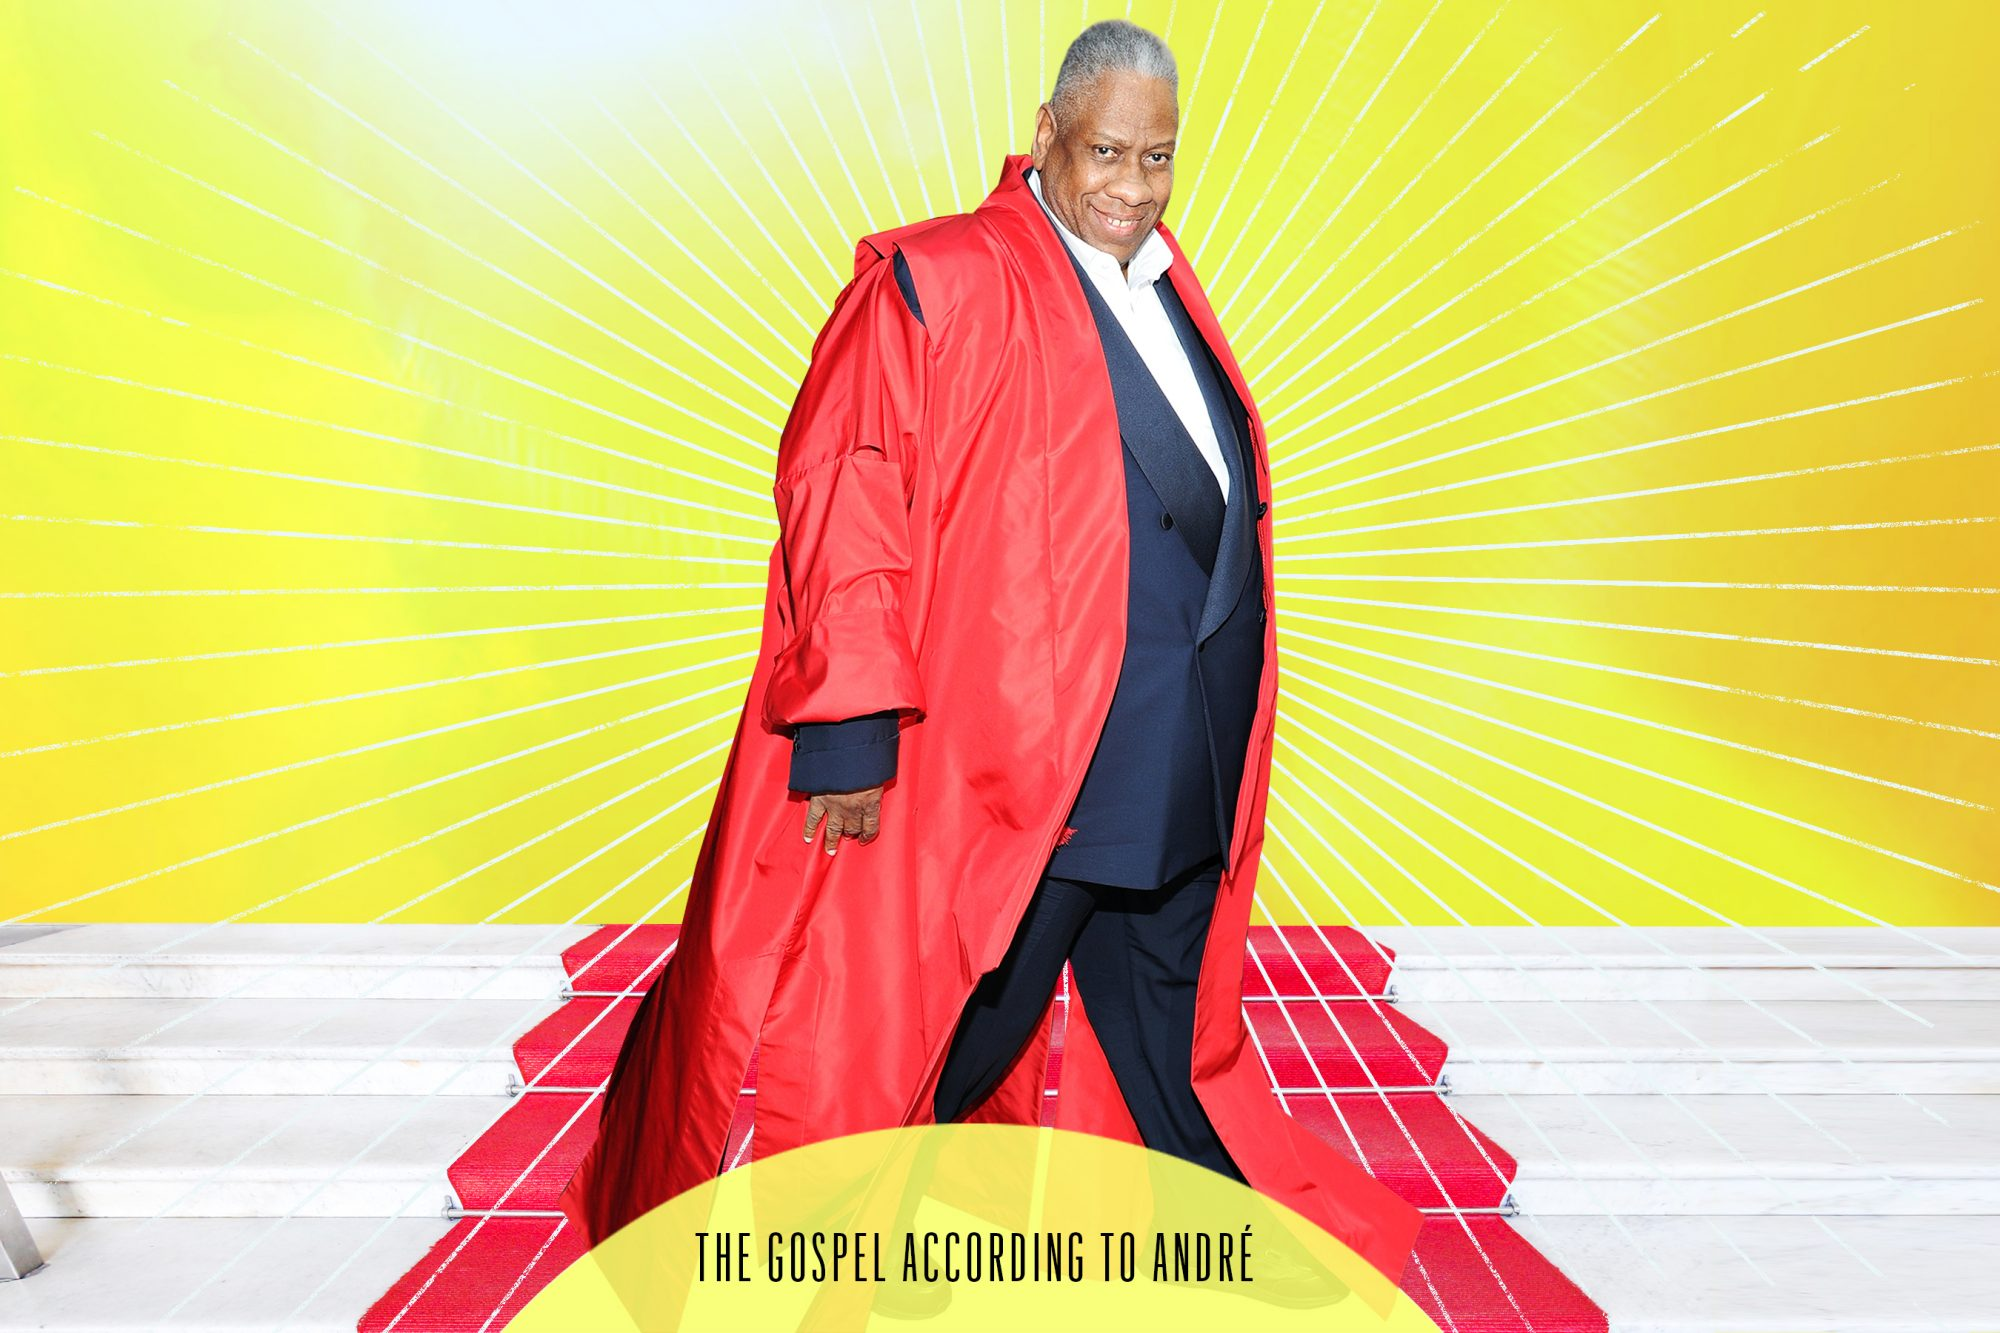 André Leon Talley in The Gospel According to André